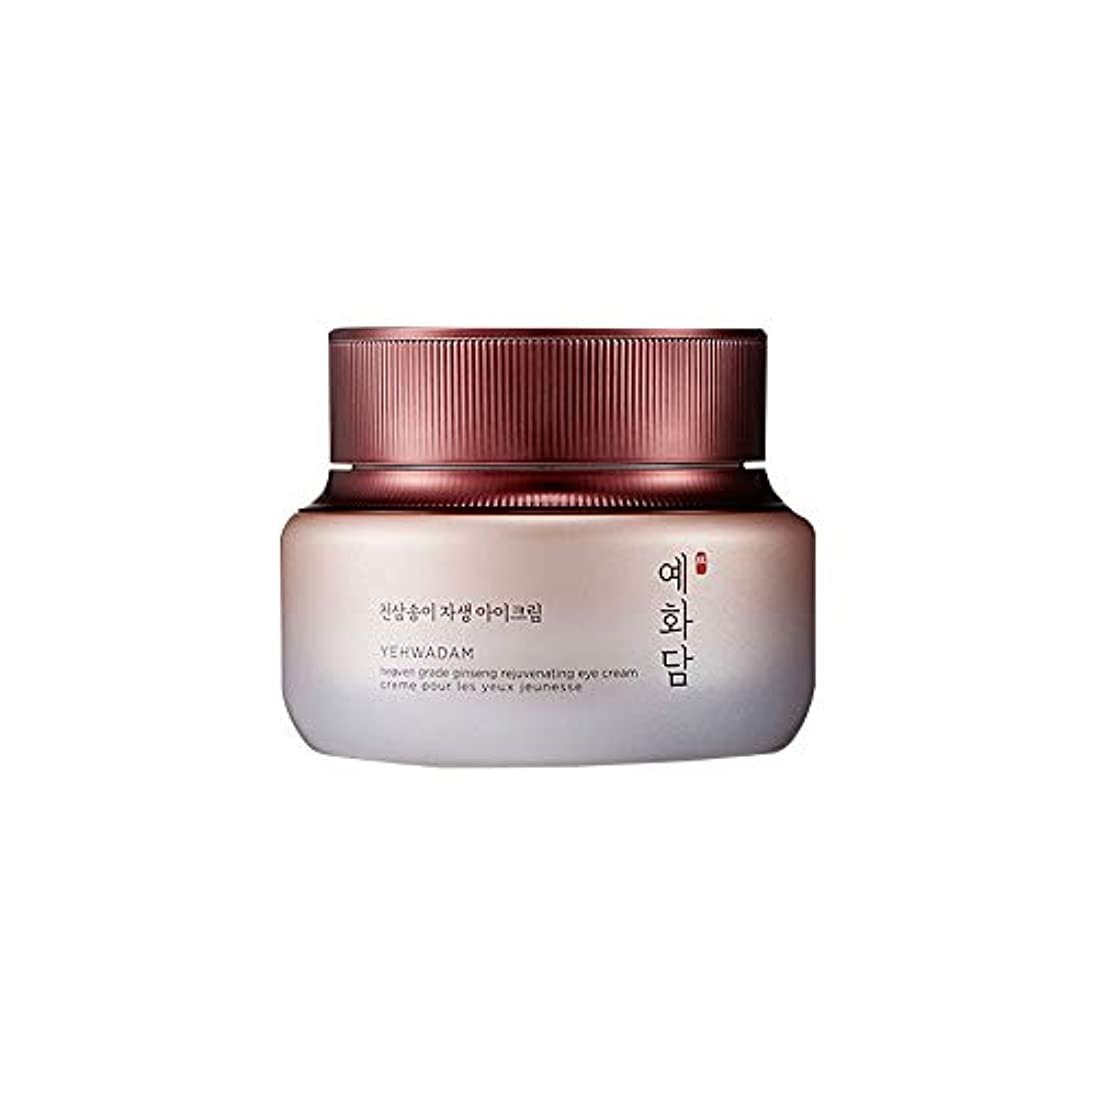 湿った夏脈拍[ザフェイスショップ]The Faceshop YEHWADAM天参松栮自生アイクリーム 25ml The Faceshop YEHWADAM Heaven Grade Ginseng Regenerating Eye...